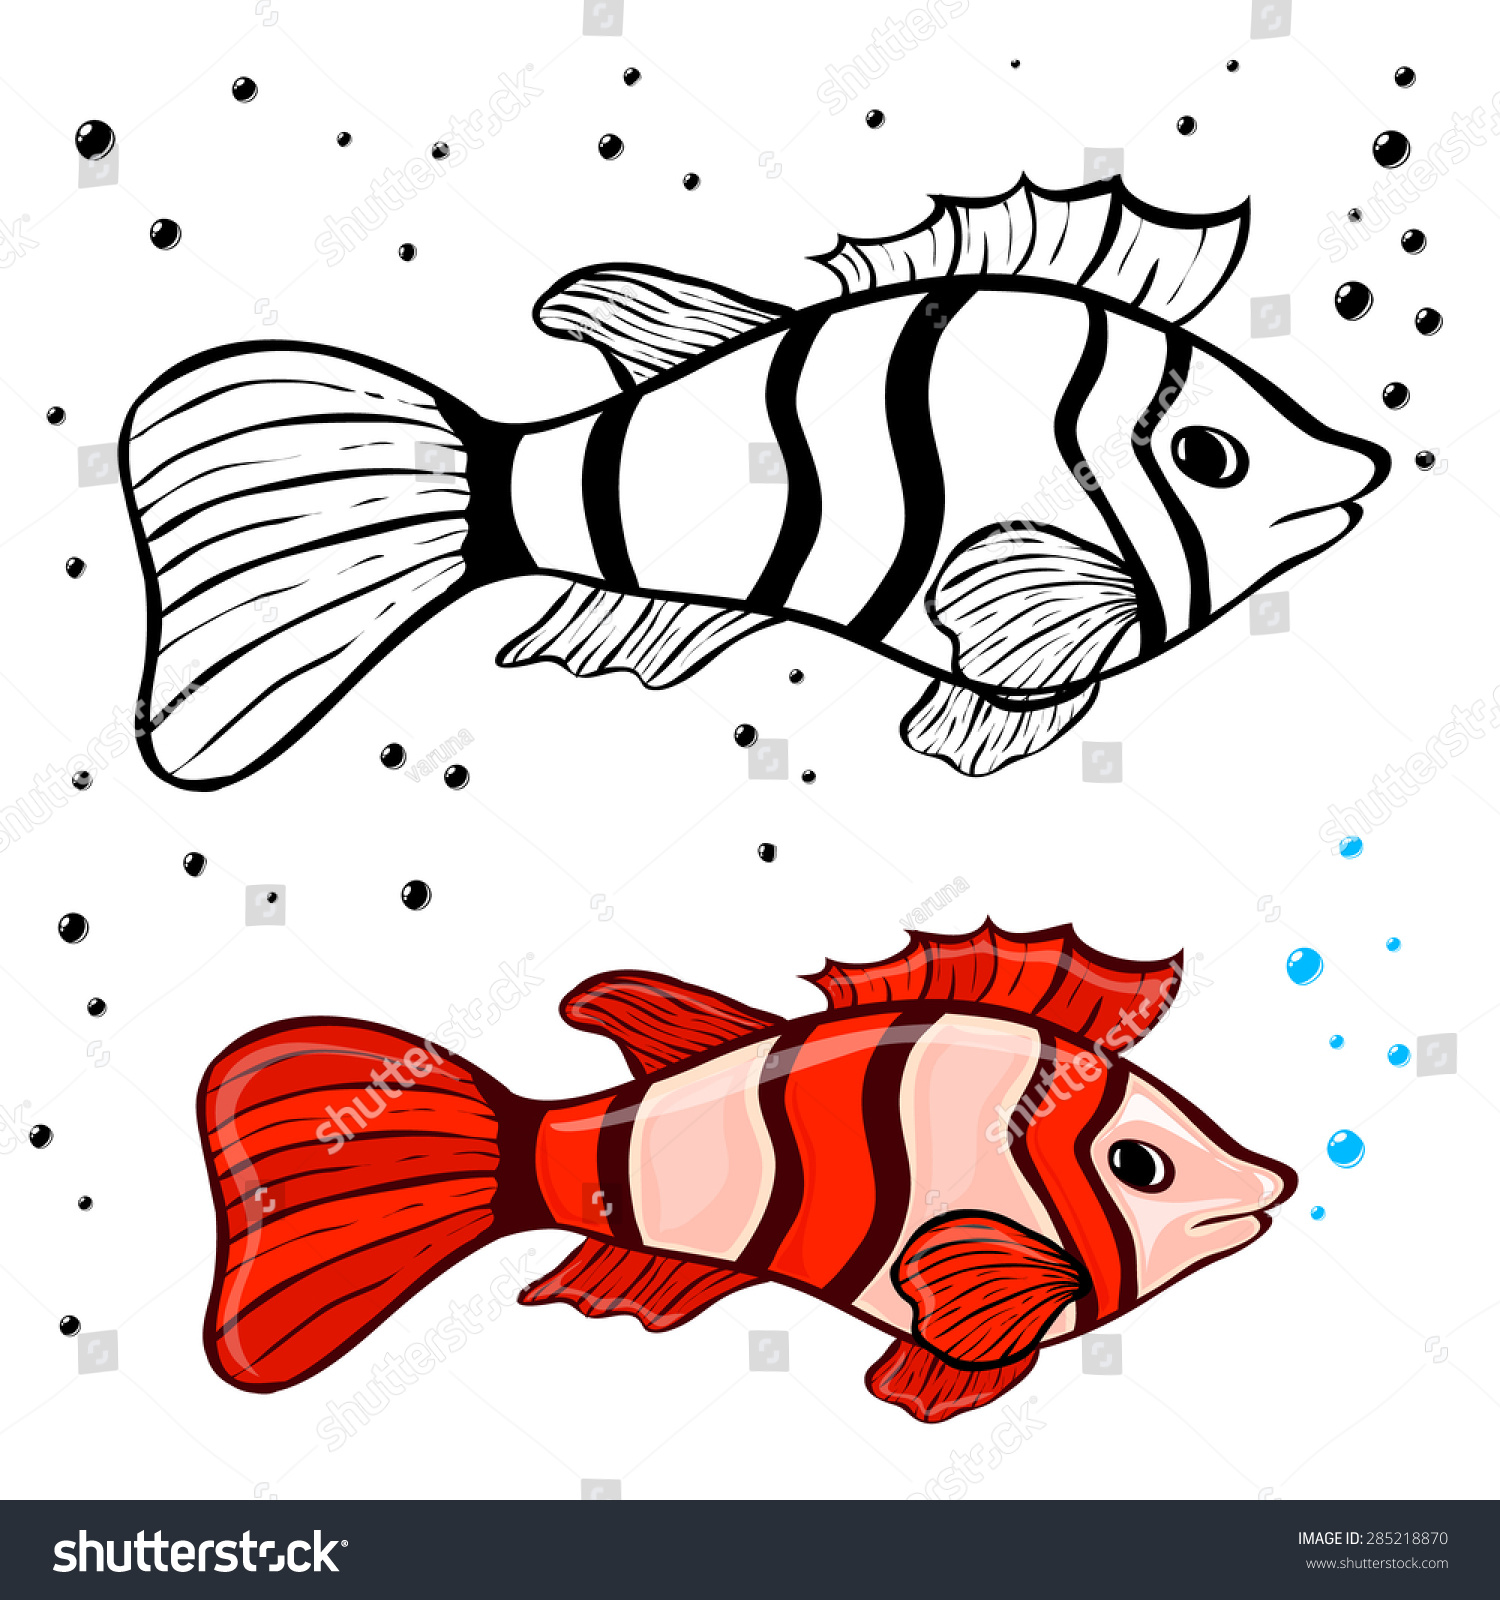 Fine Fish Coloring Gallery - Drawing Coloring - androidharga.info